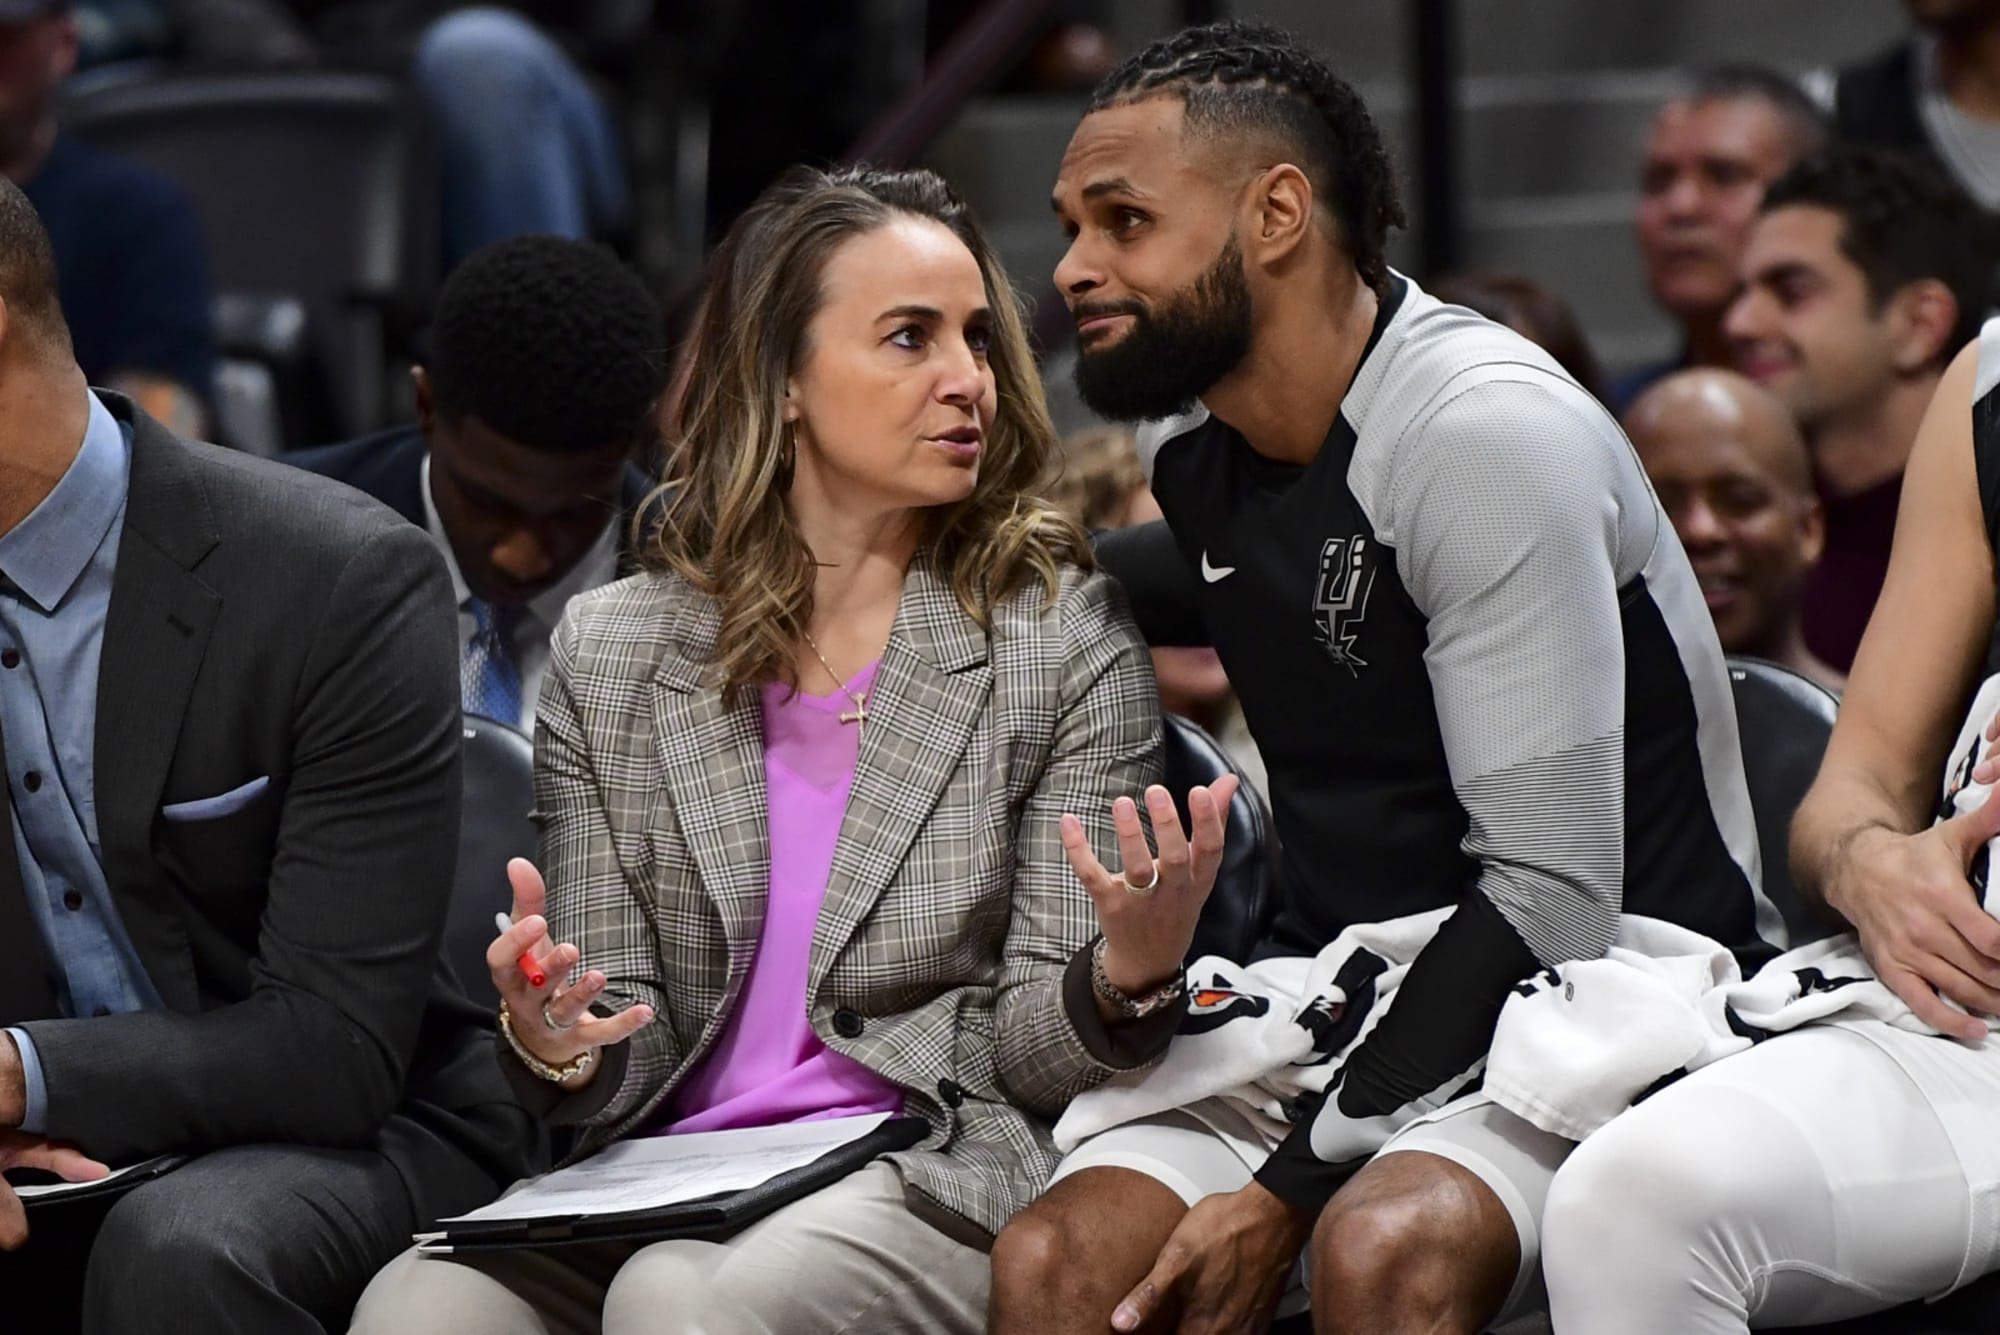 Spurs' Becky Hammon Becomes First Woman To Head Coach NBA Team